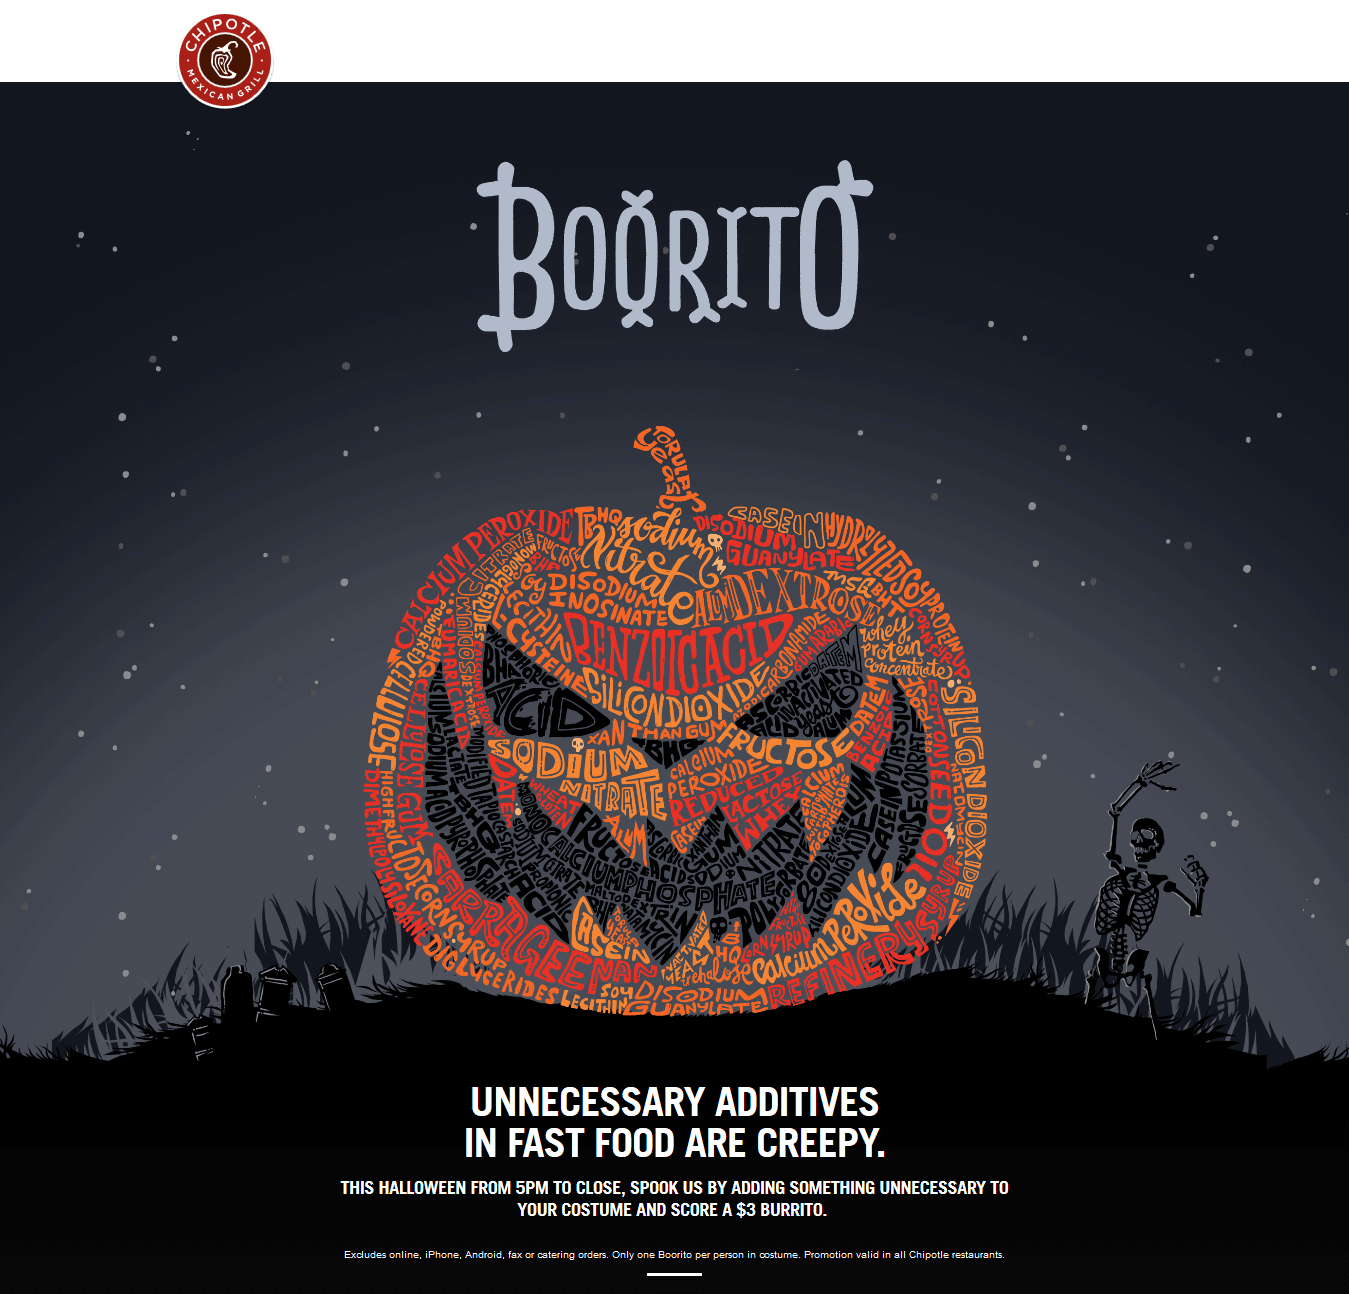 Chipotle Coupon March 2018 $3 burritos in costume Halloween at Chipotle